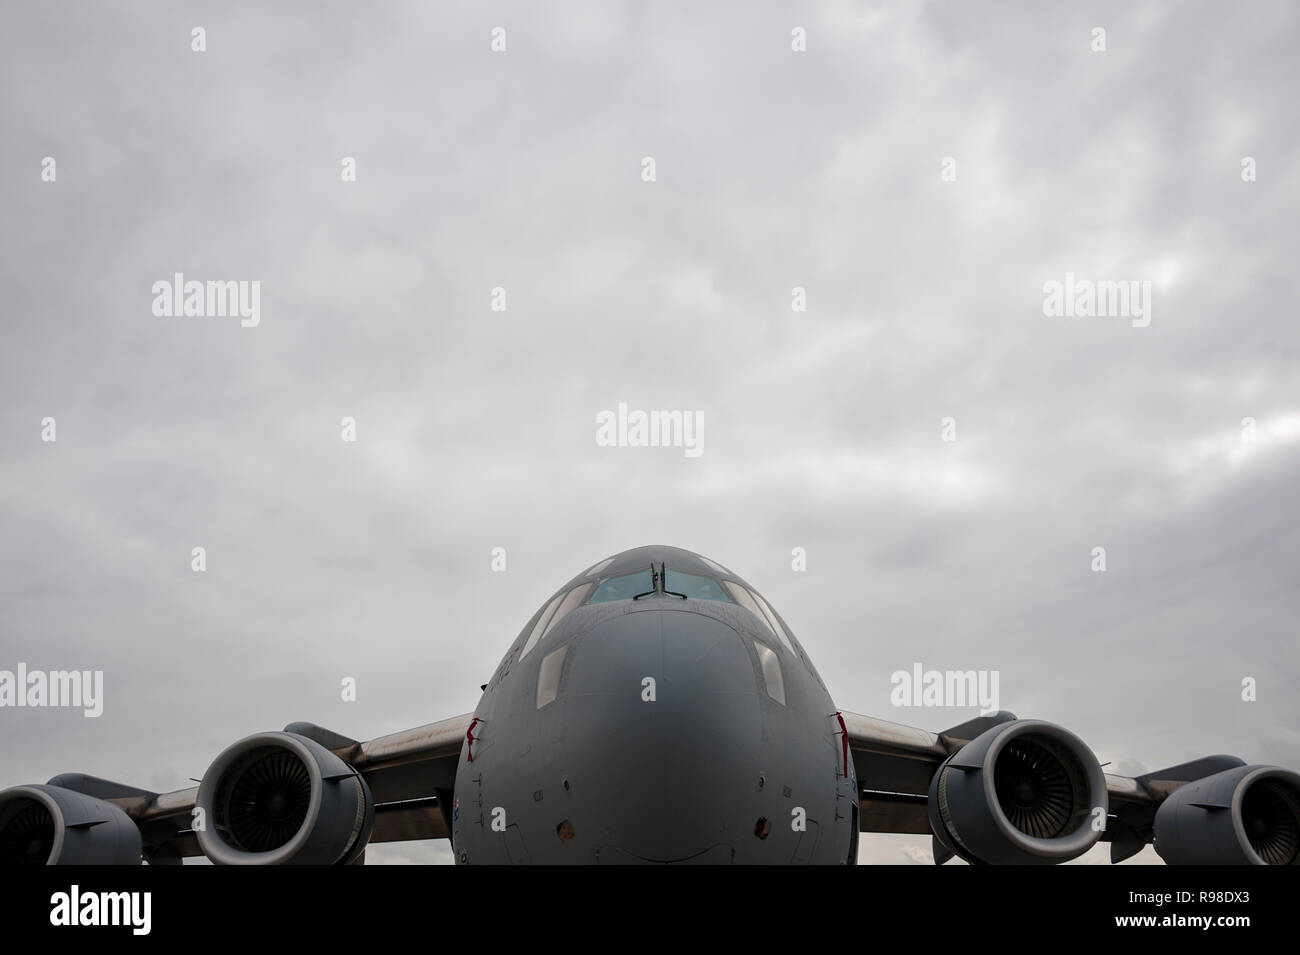 Modern military cargo jet, low and symmetrical in frame with cloudy sky, negative space - Stock Photo